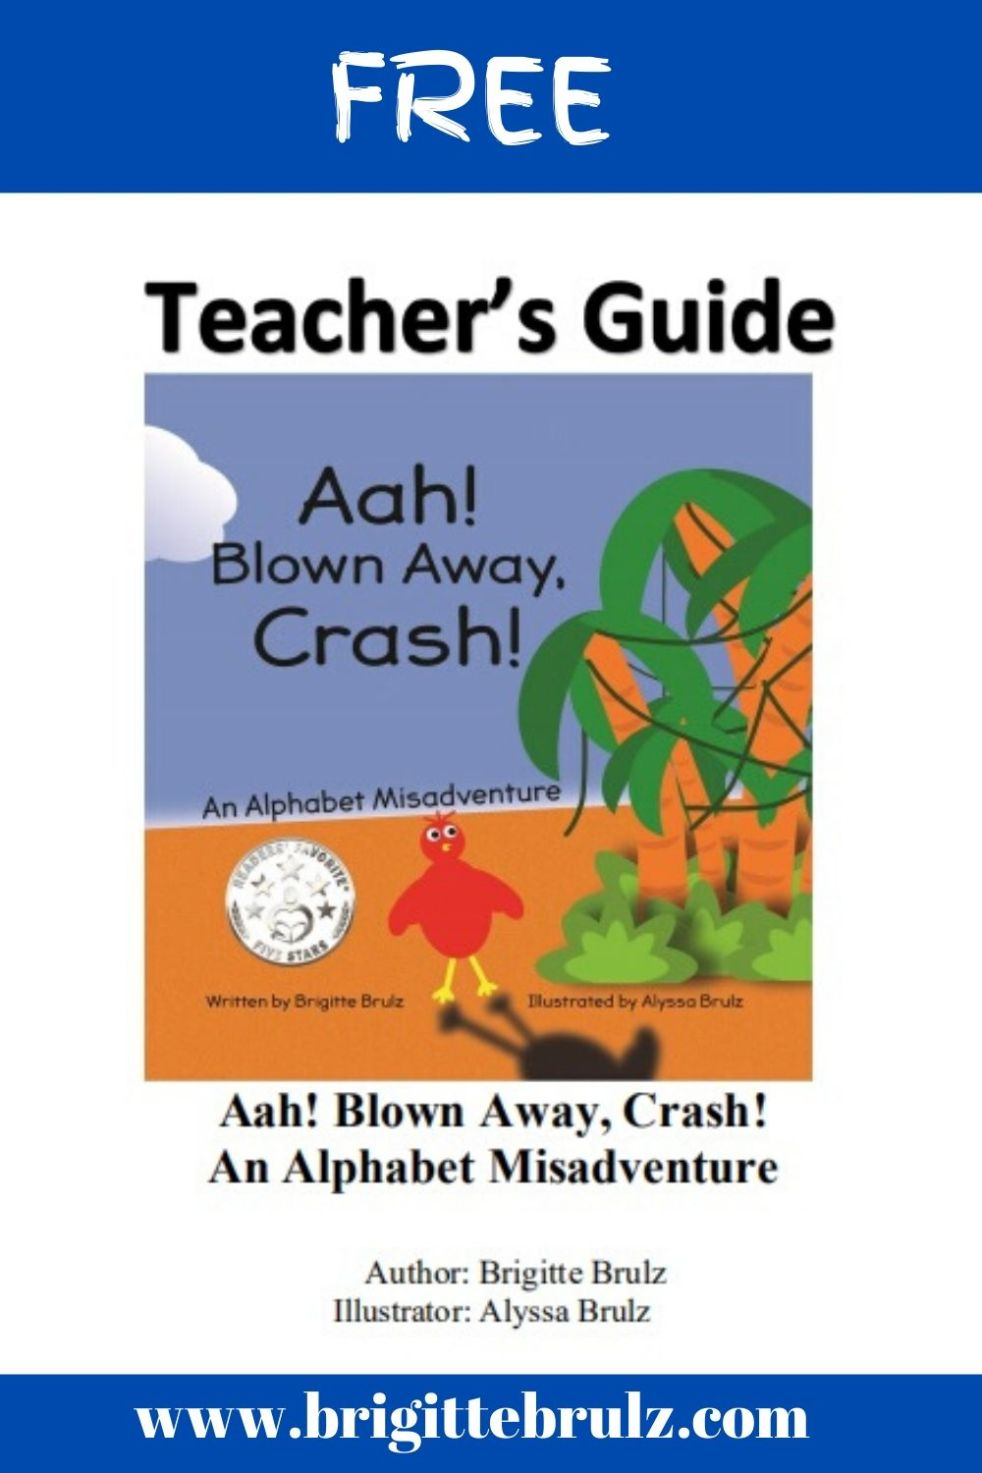 FREE Teacher's Guide for Aah! Blown Away, Crash!